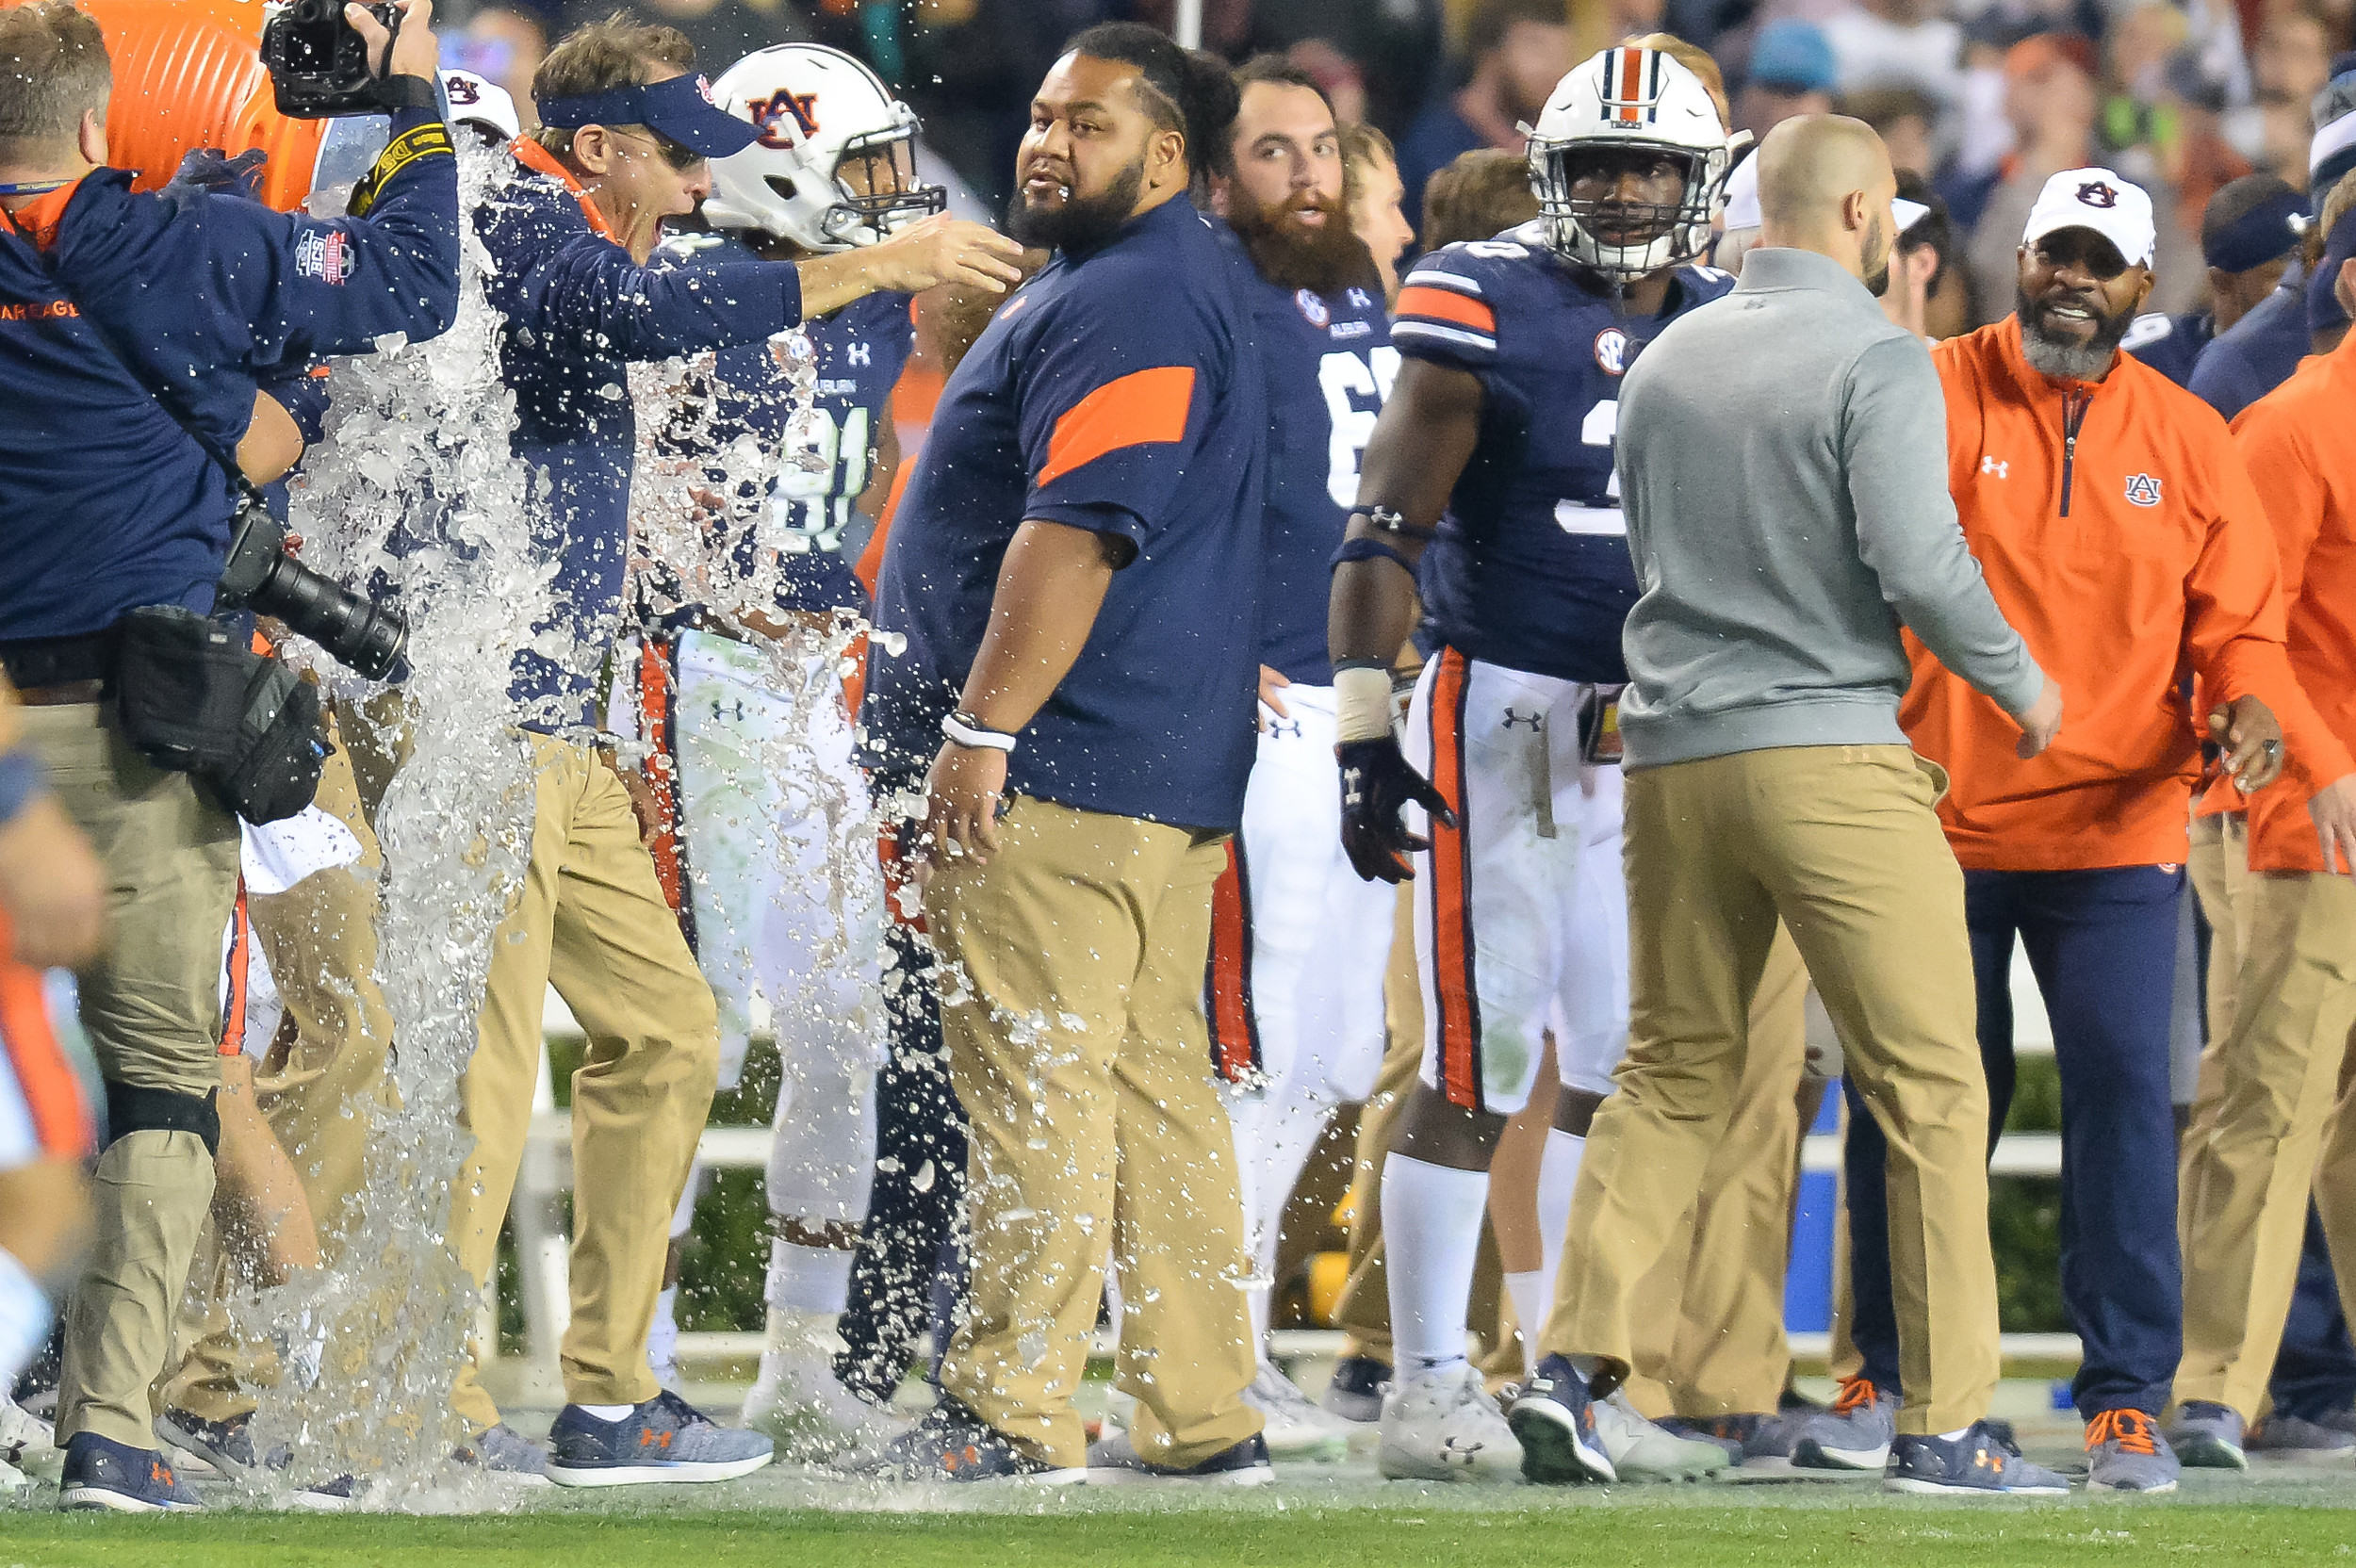 Auburn Tigers head coach Guz Malzahn is showered with ice water in the final seconds of during the second half of Saturday's 26-14 win over Alabama, at Jordan-Hare Stadium.